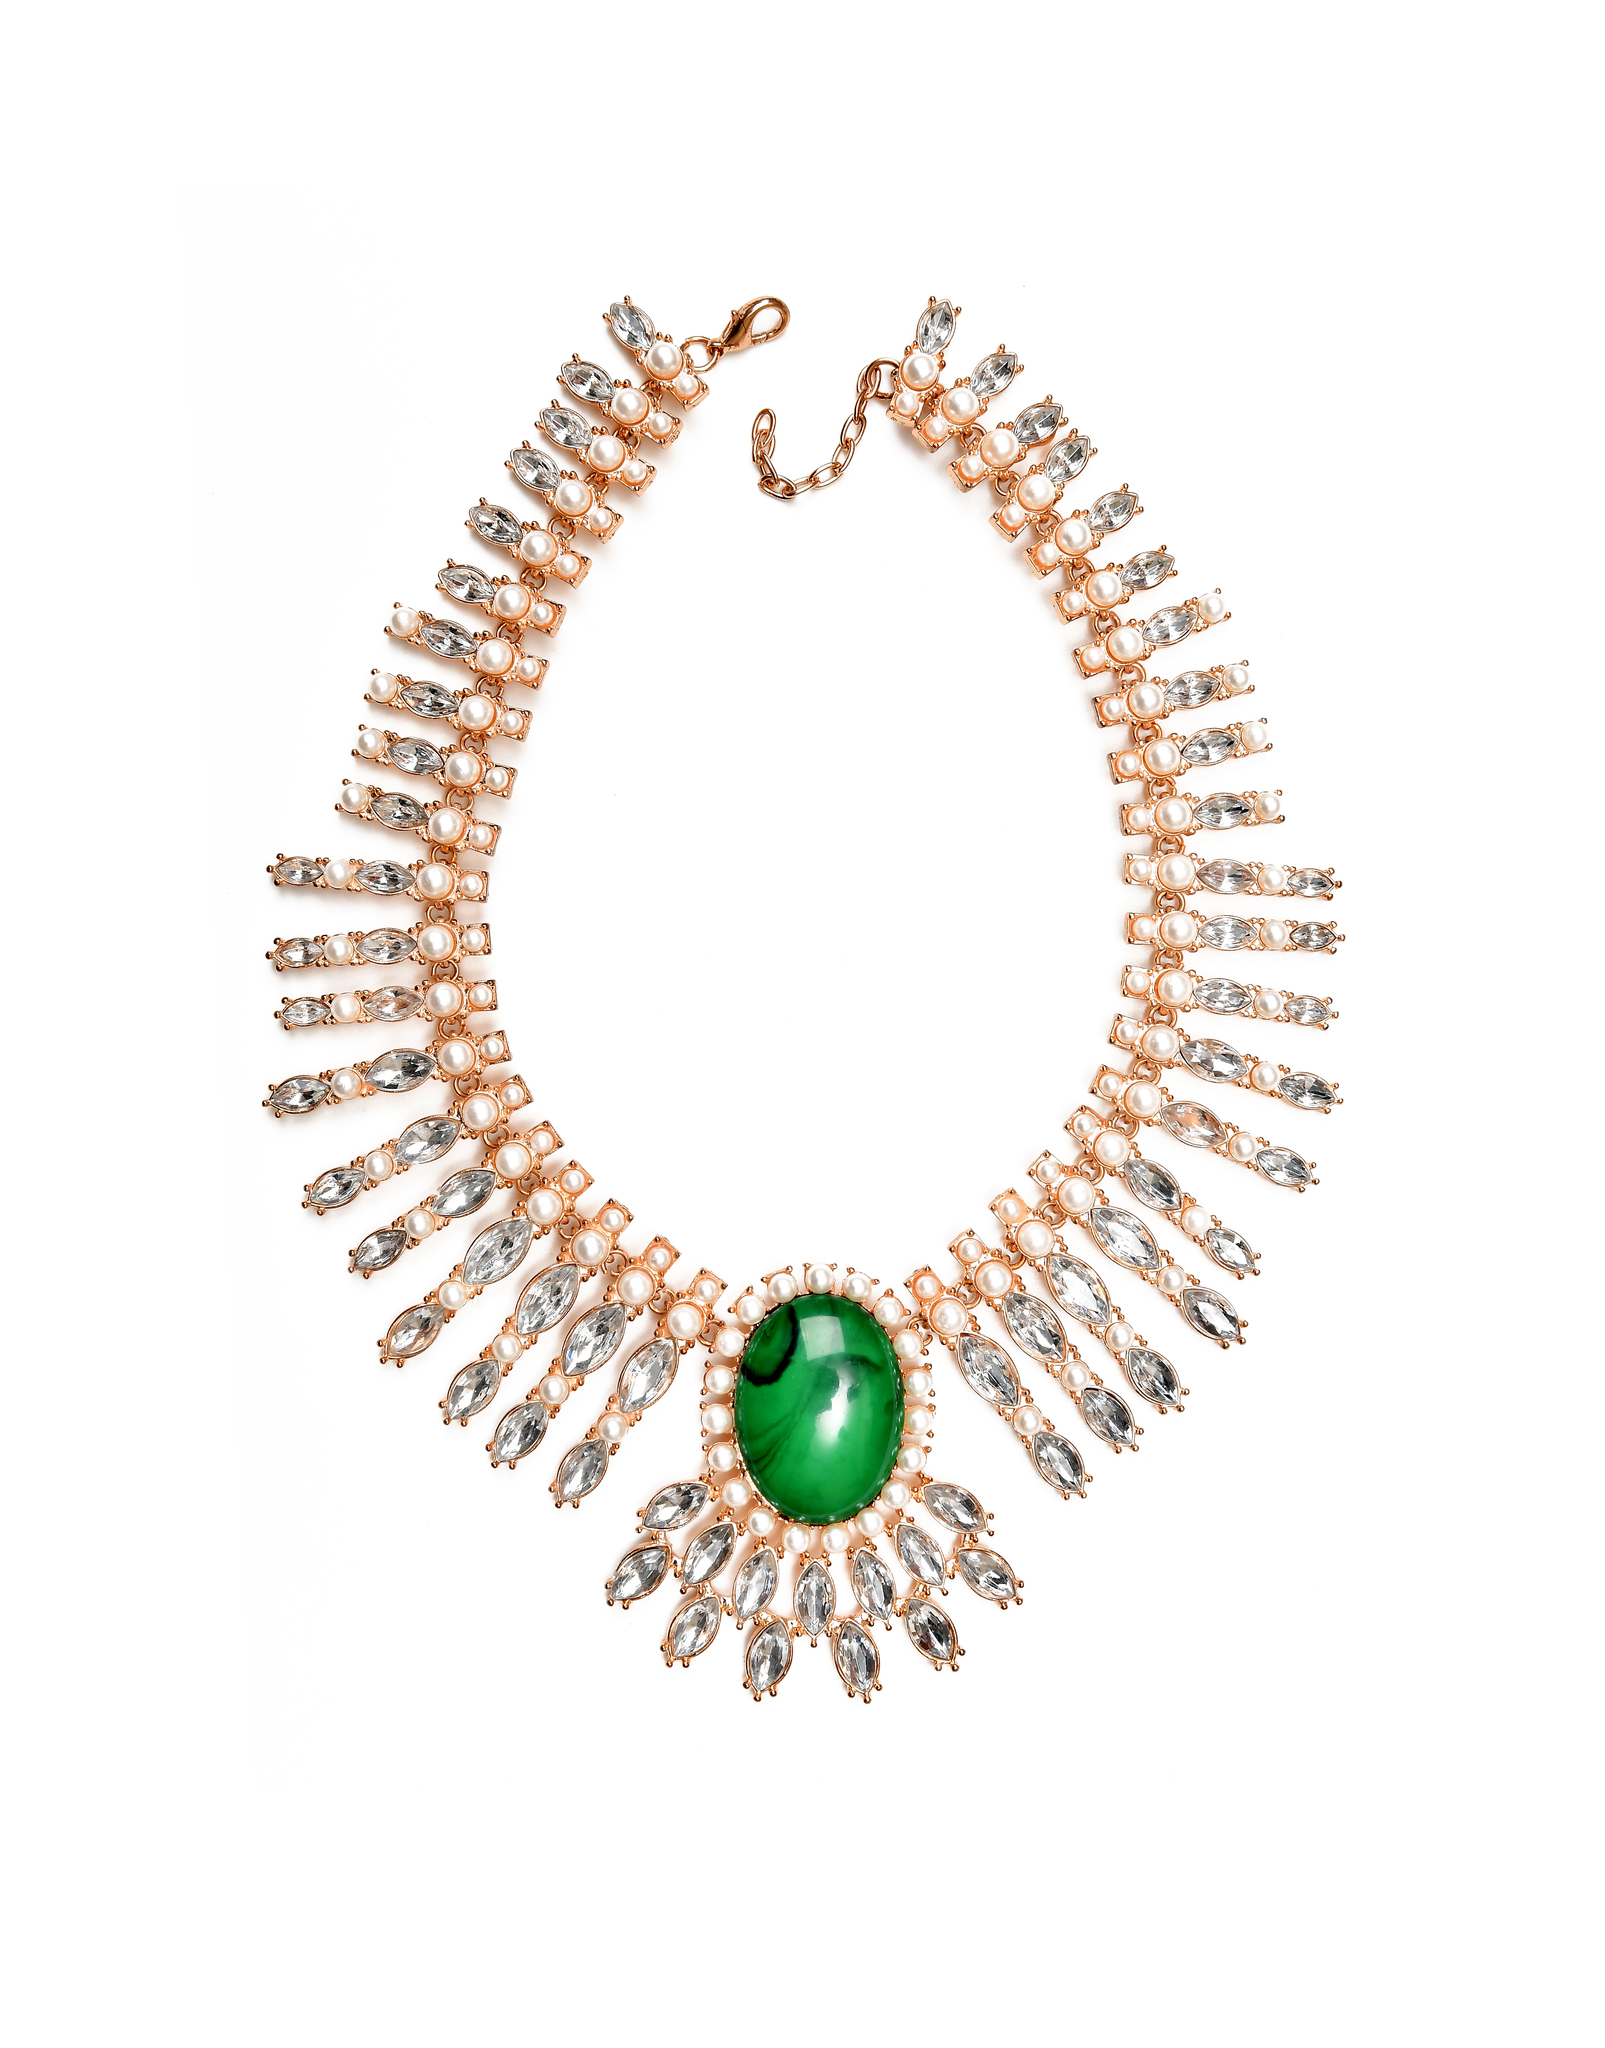 Necklace by Oscar de la Renta